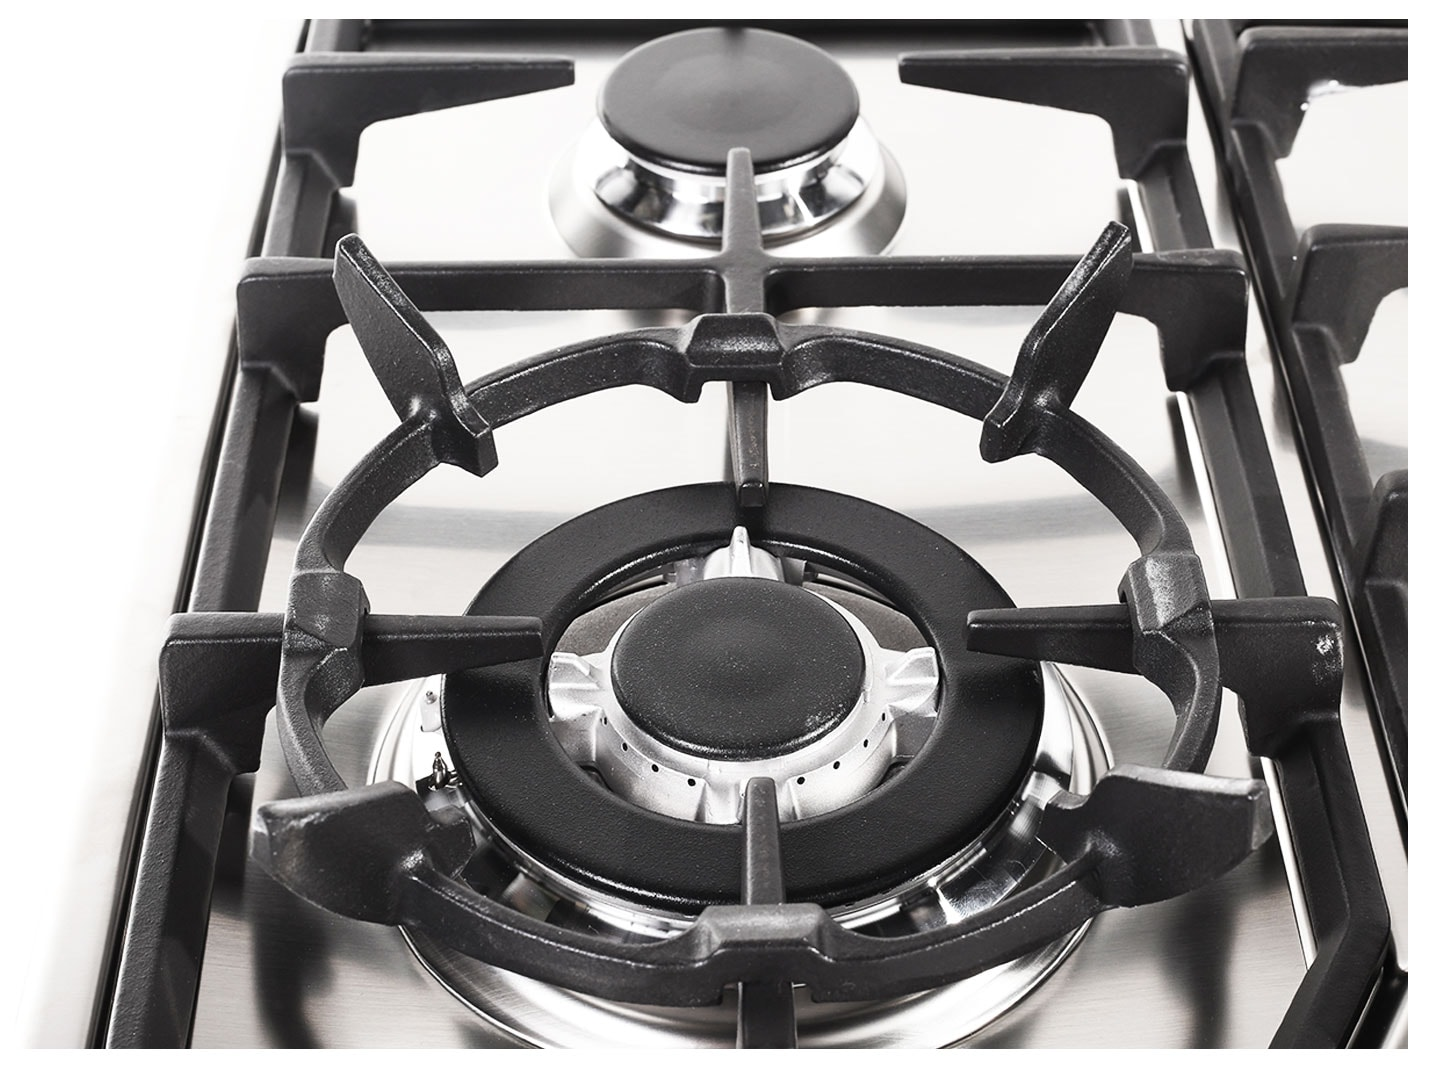 Stainless Steel 60cm Gas Cooktop with Wok Burner - DEGH60